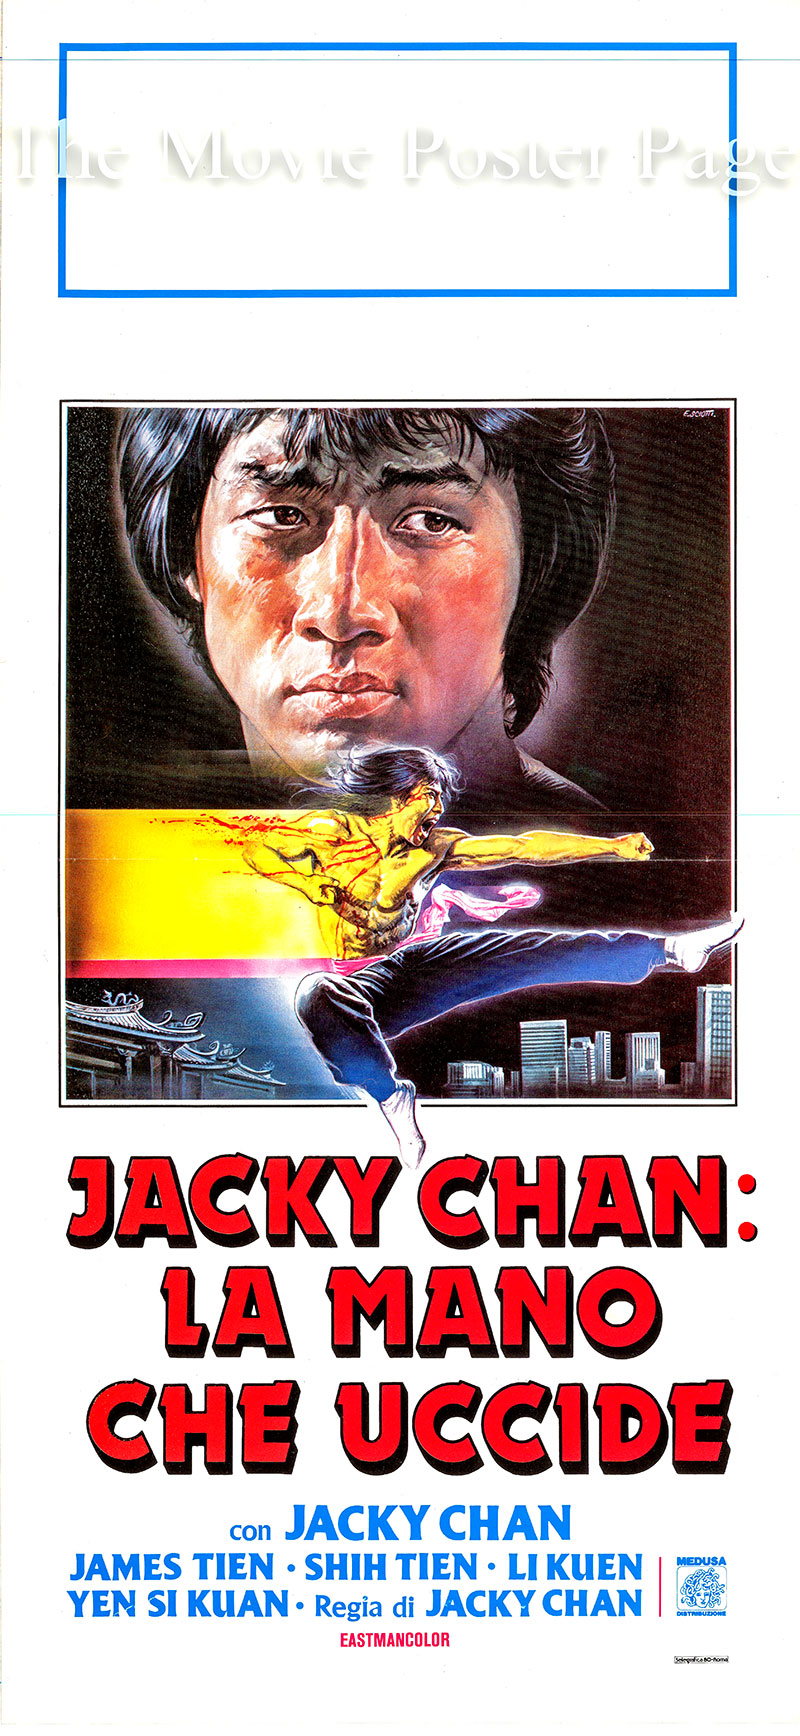 Pictured is an Italian locandina poster for the 1979 Jackie Chan film Fearless Hyena starring Jackie Chan as Shing Lung.